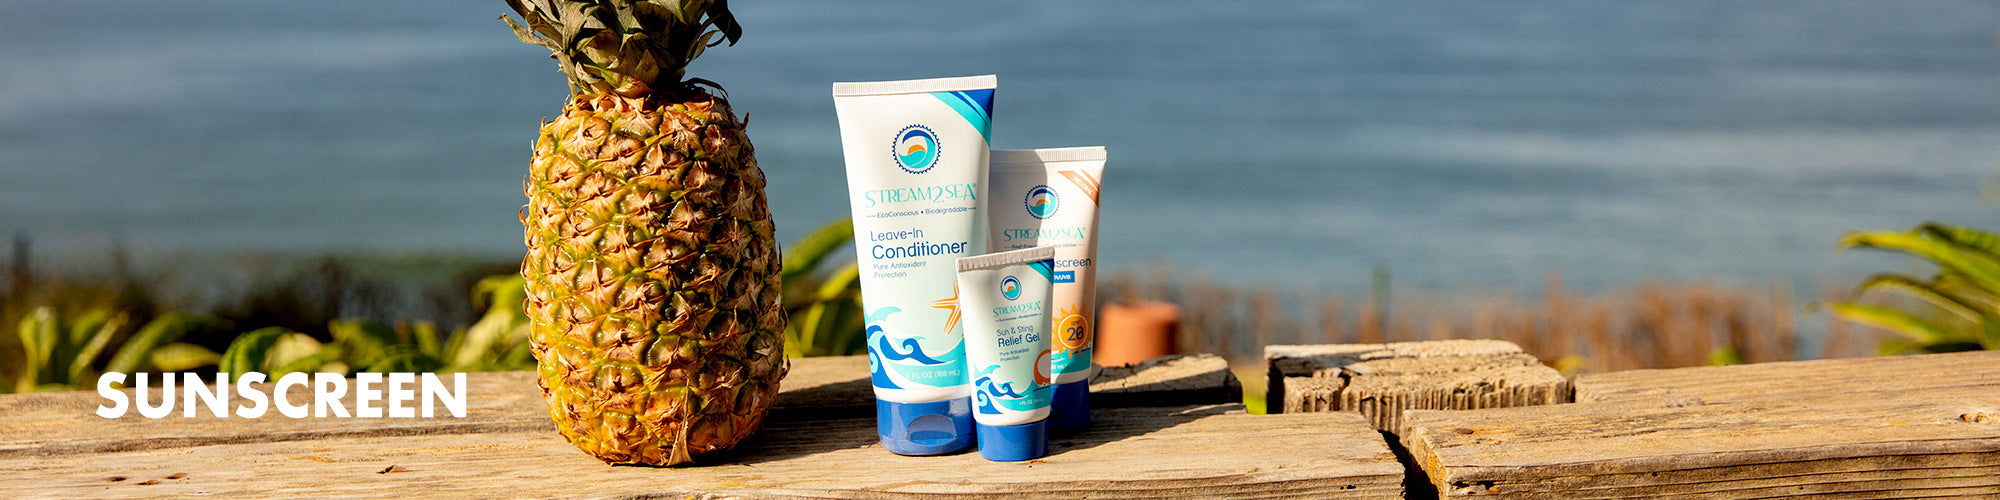 Sunscreen collection page.